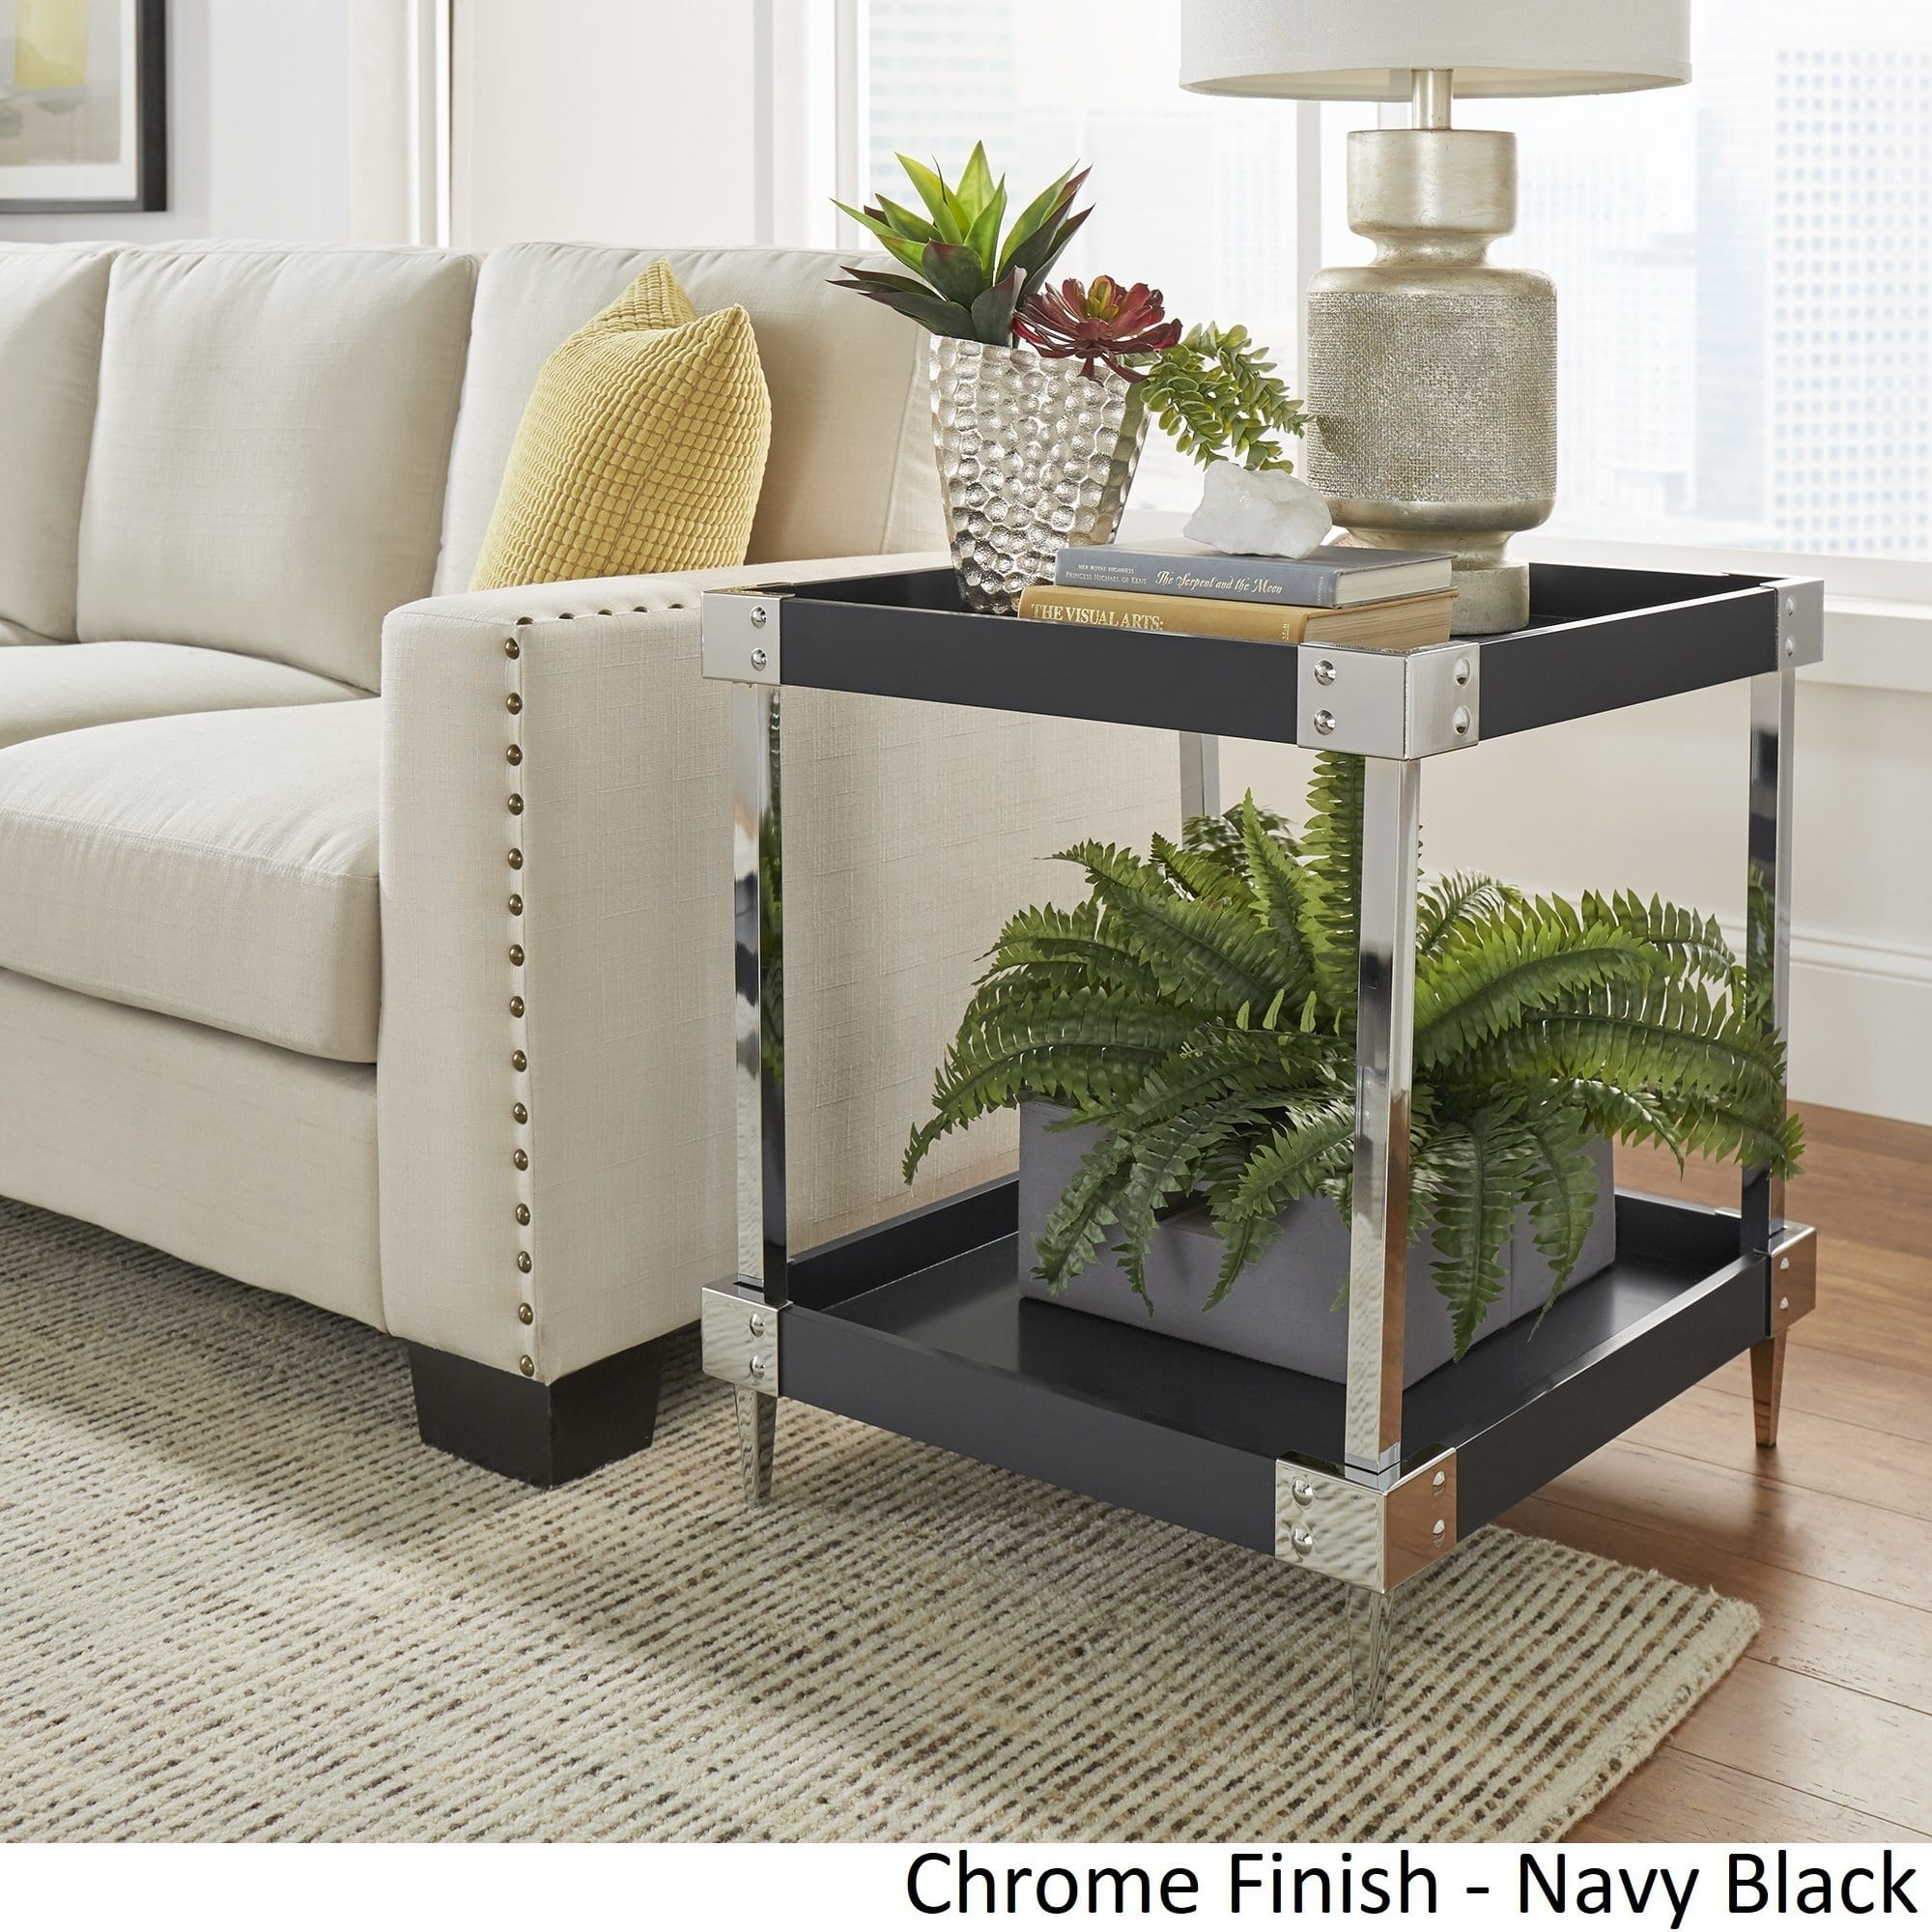 kaila modern metal accent end table nightstand inspire bold unique tables pier one christmas pillows black lamp legs ikea extra long sofa brass oriental lamps coffee bedroom sets